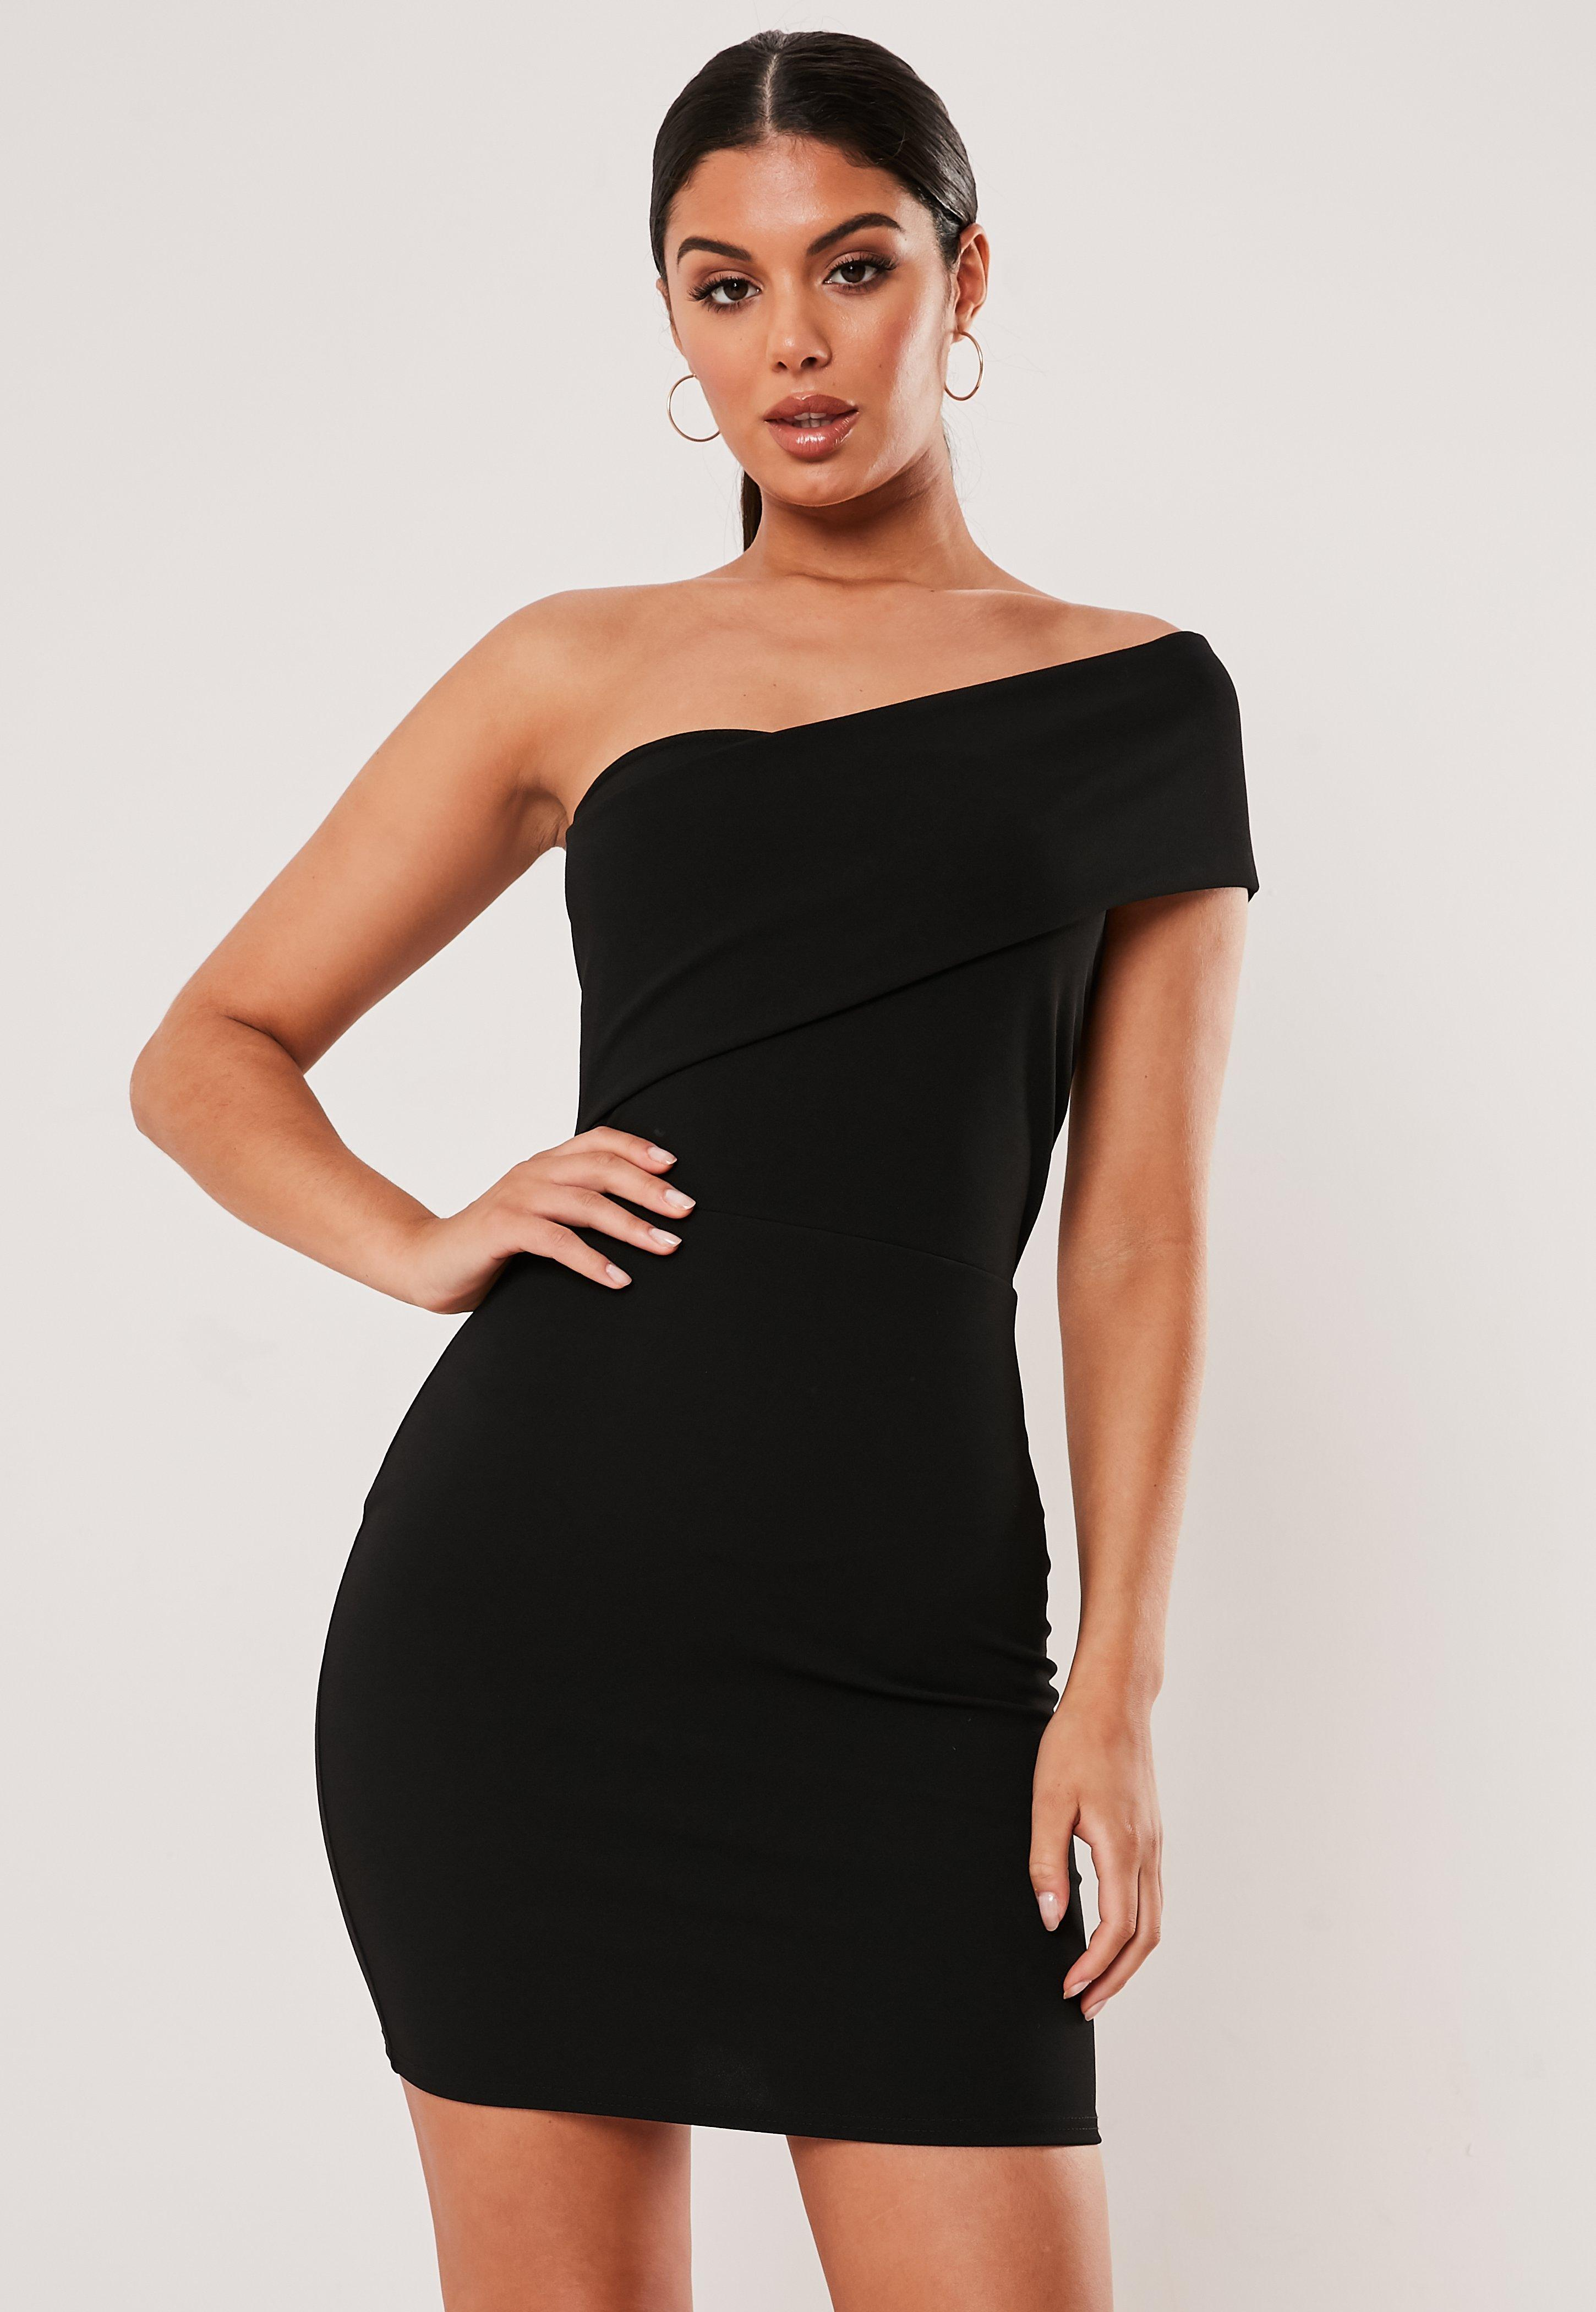 161c2778d Little Black Dresses | Black Dress & LBD's - Missguided